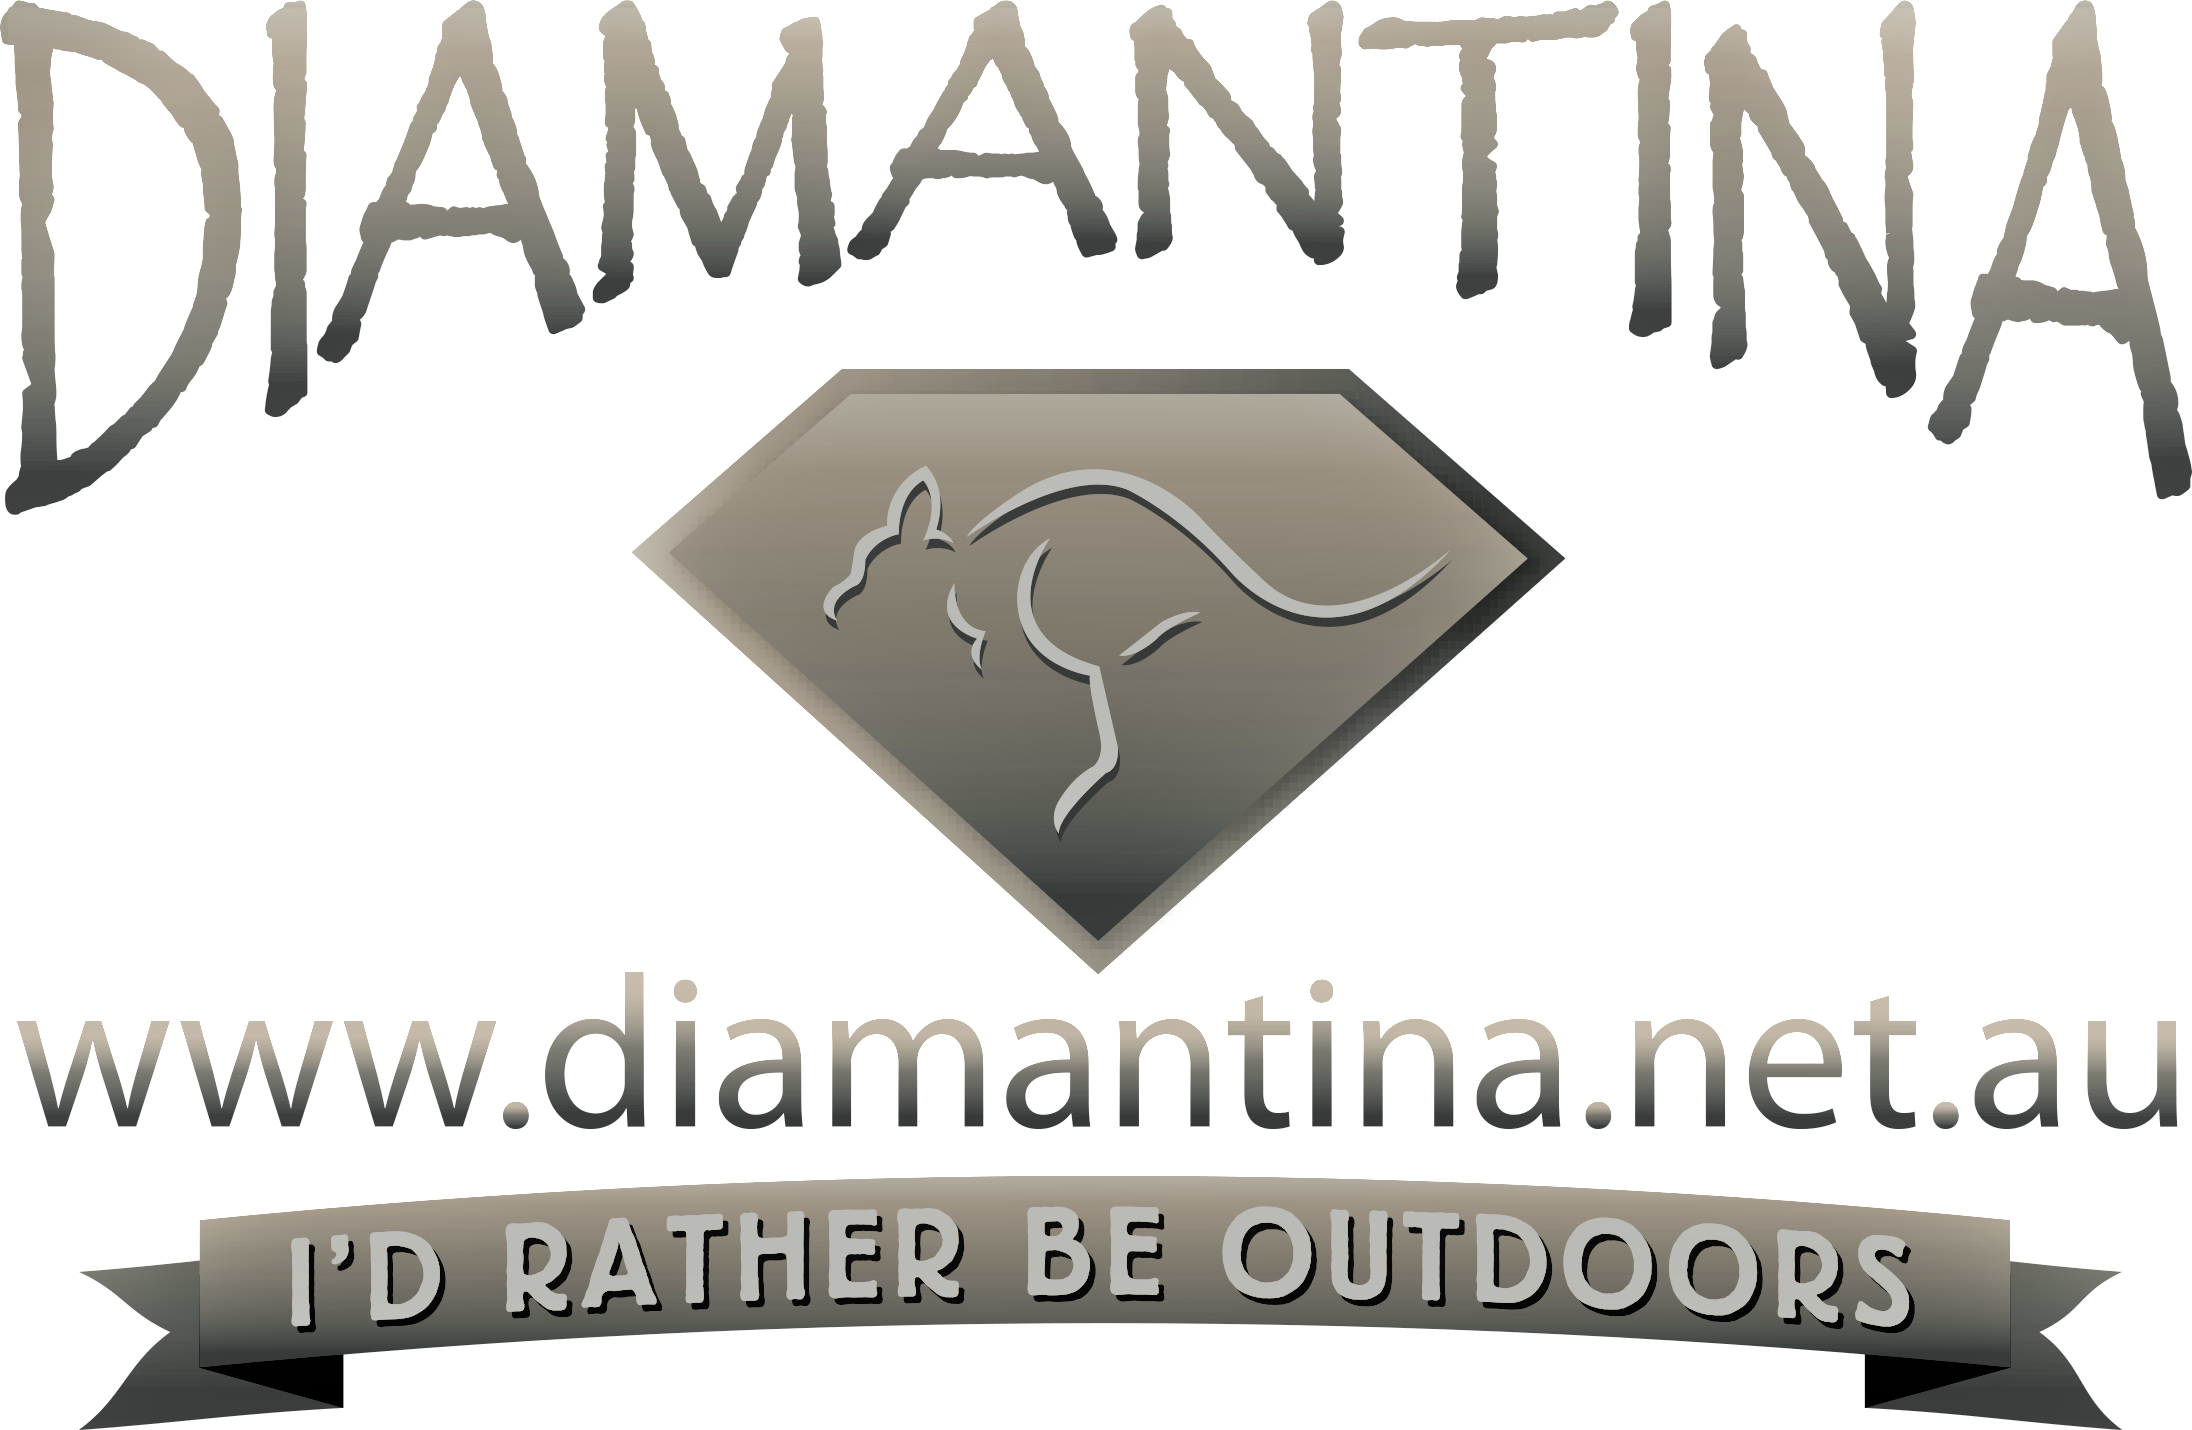 Diamantina Outdoors